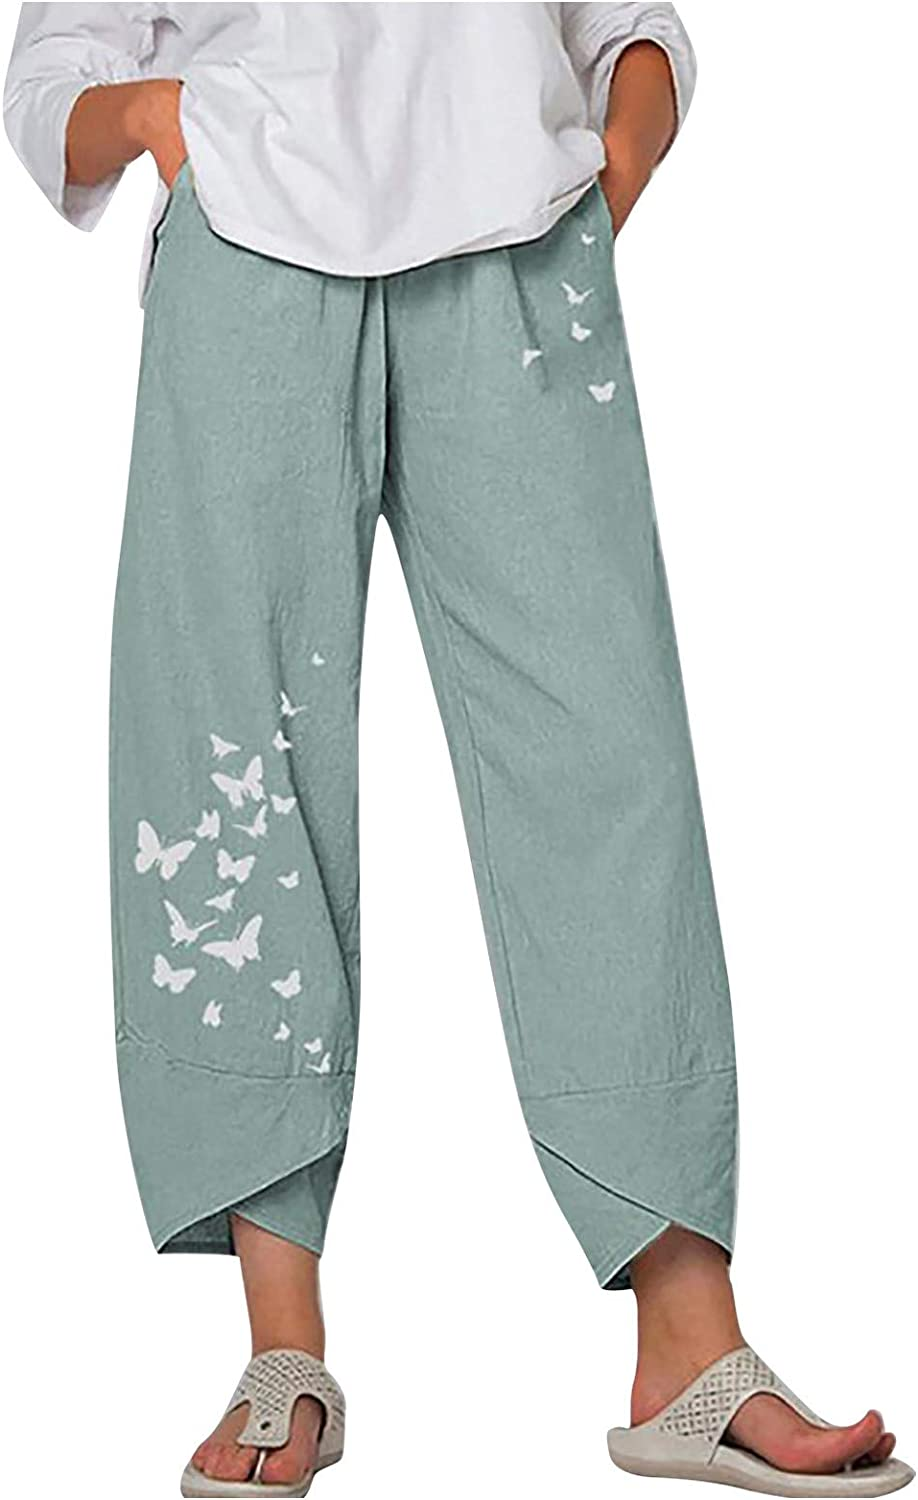 Maryia 2021 Summer Cotton Linen Capris Pants for Women Casual ...